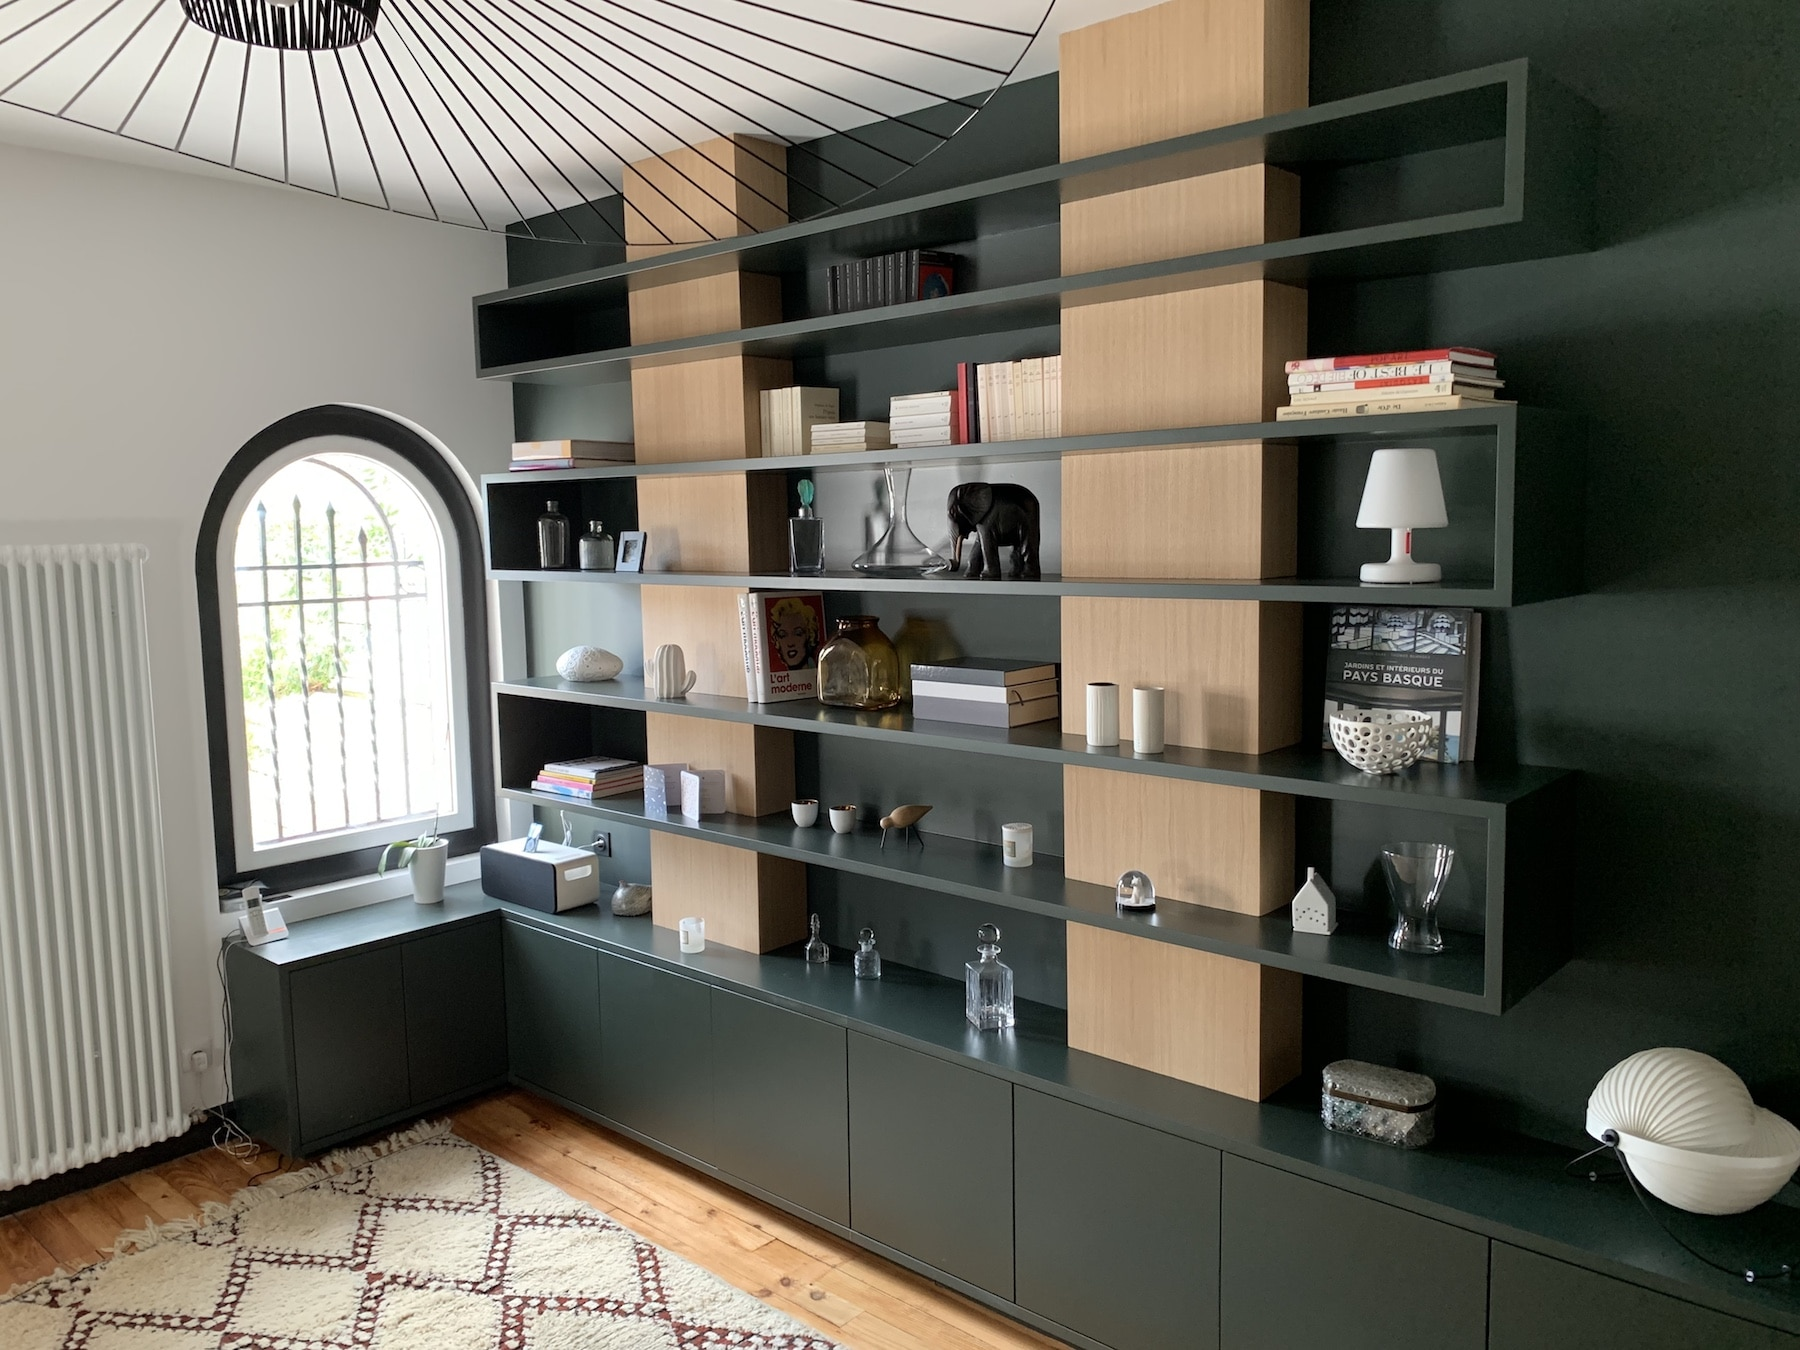 conception-fabrication-pose-bibliotheque-darrieumerlou-agencement-interieur-bayonne-anglet-biarritz-alentours-02